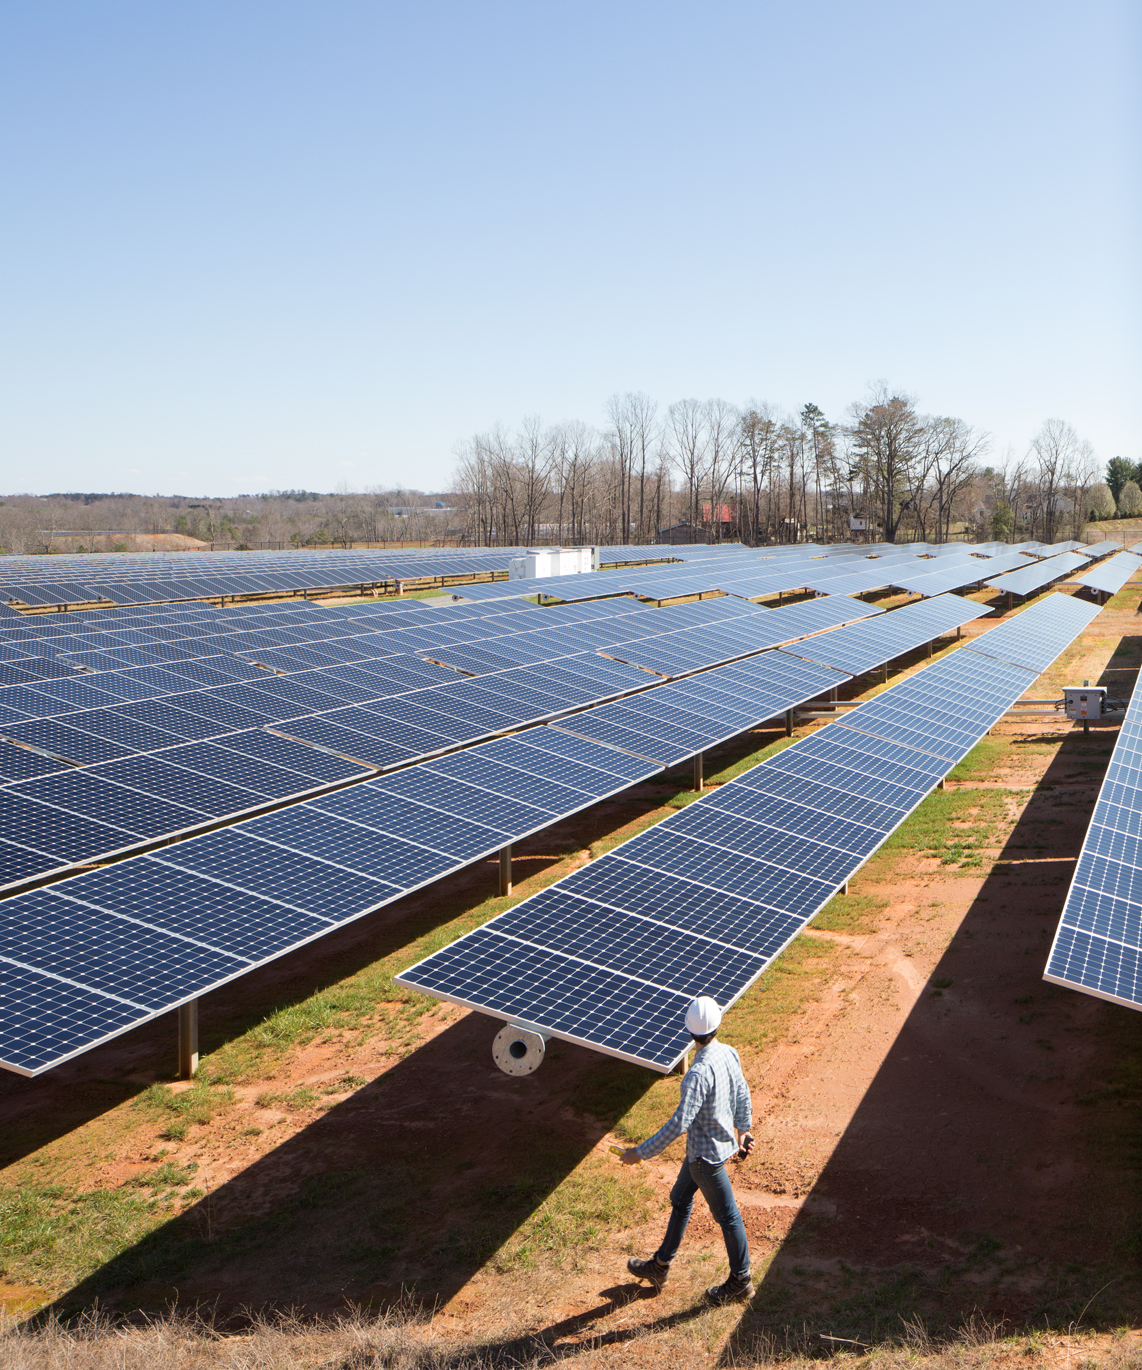 Foxconn and Other Apple Partners Pledge to Use Only 100% Renewable Energy for Apple Production